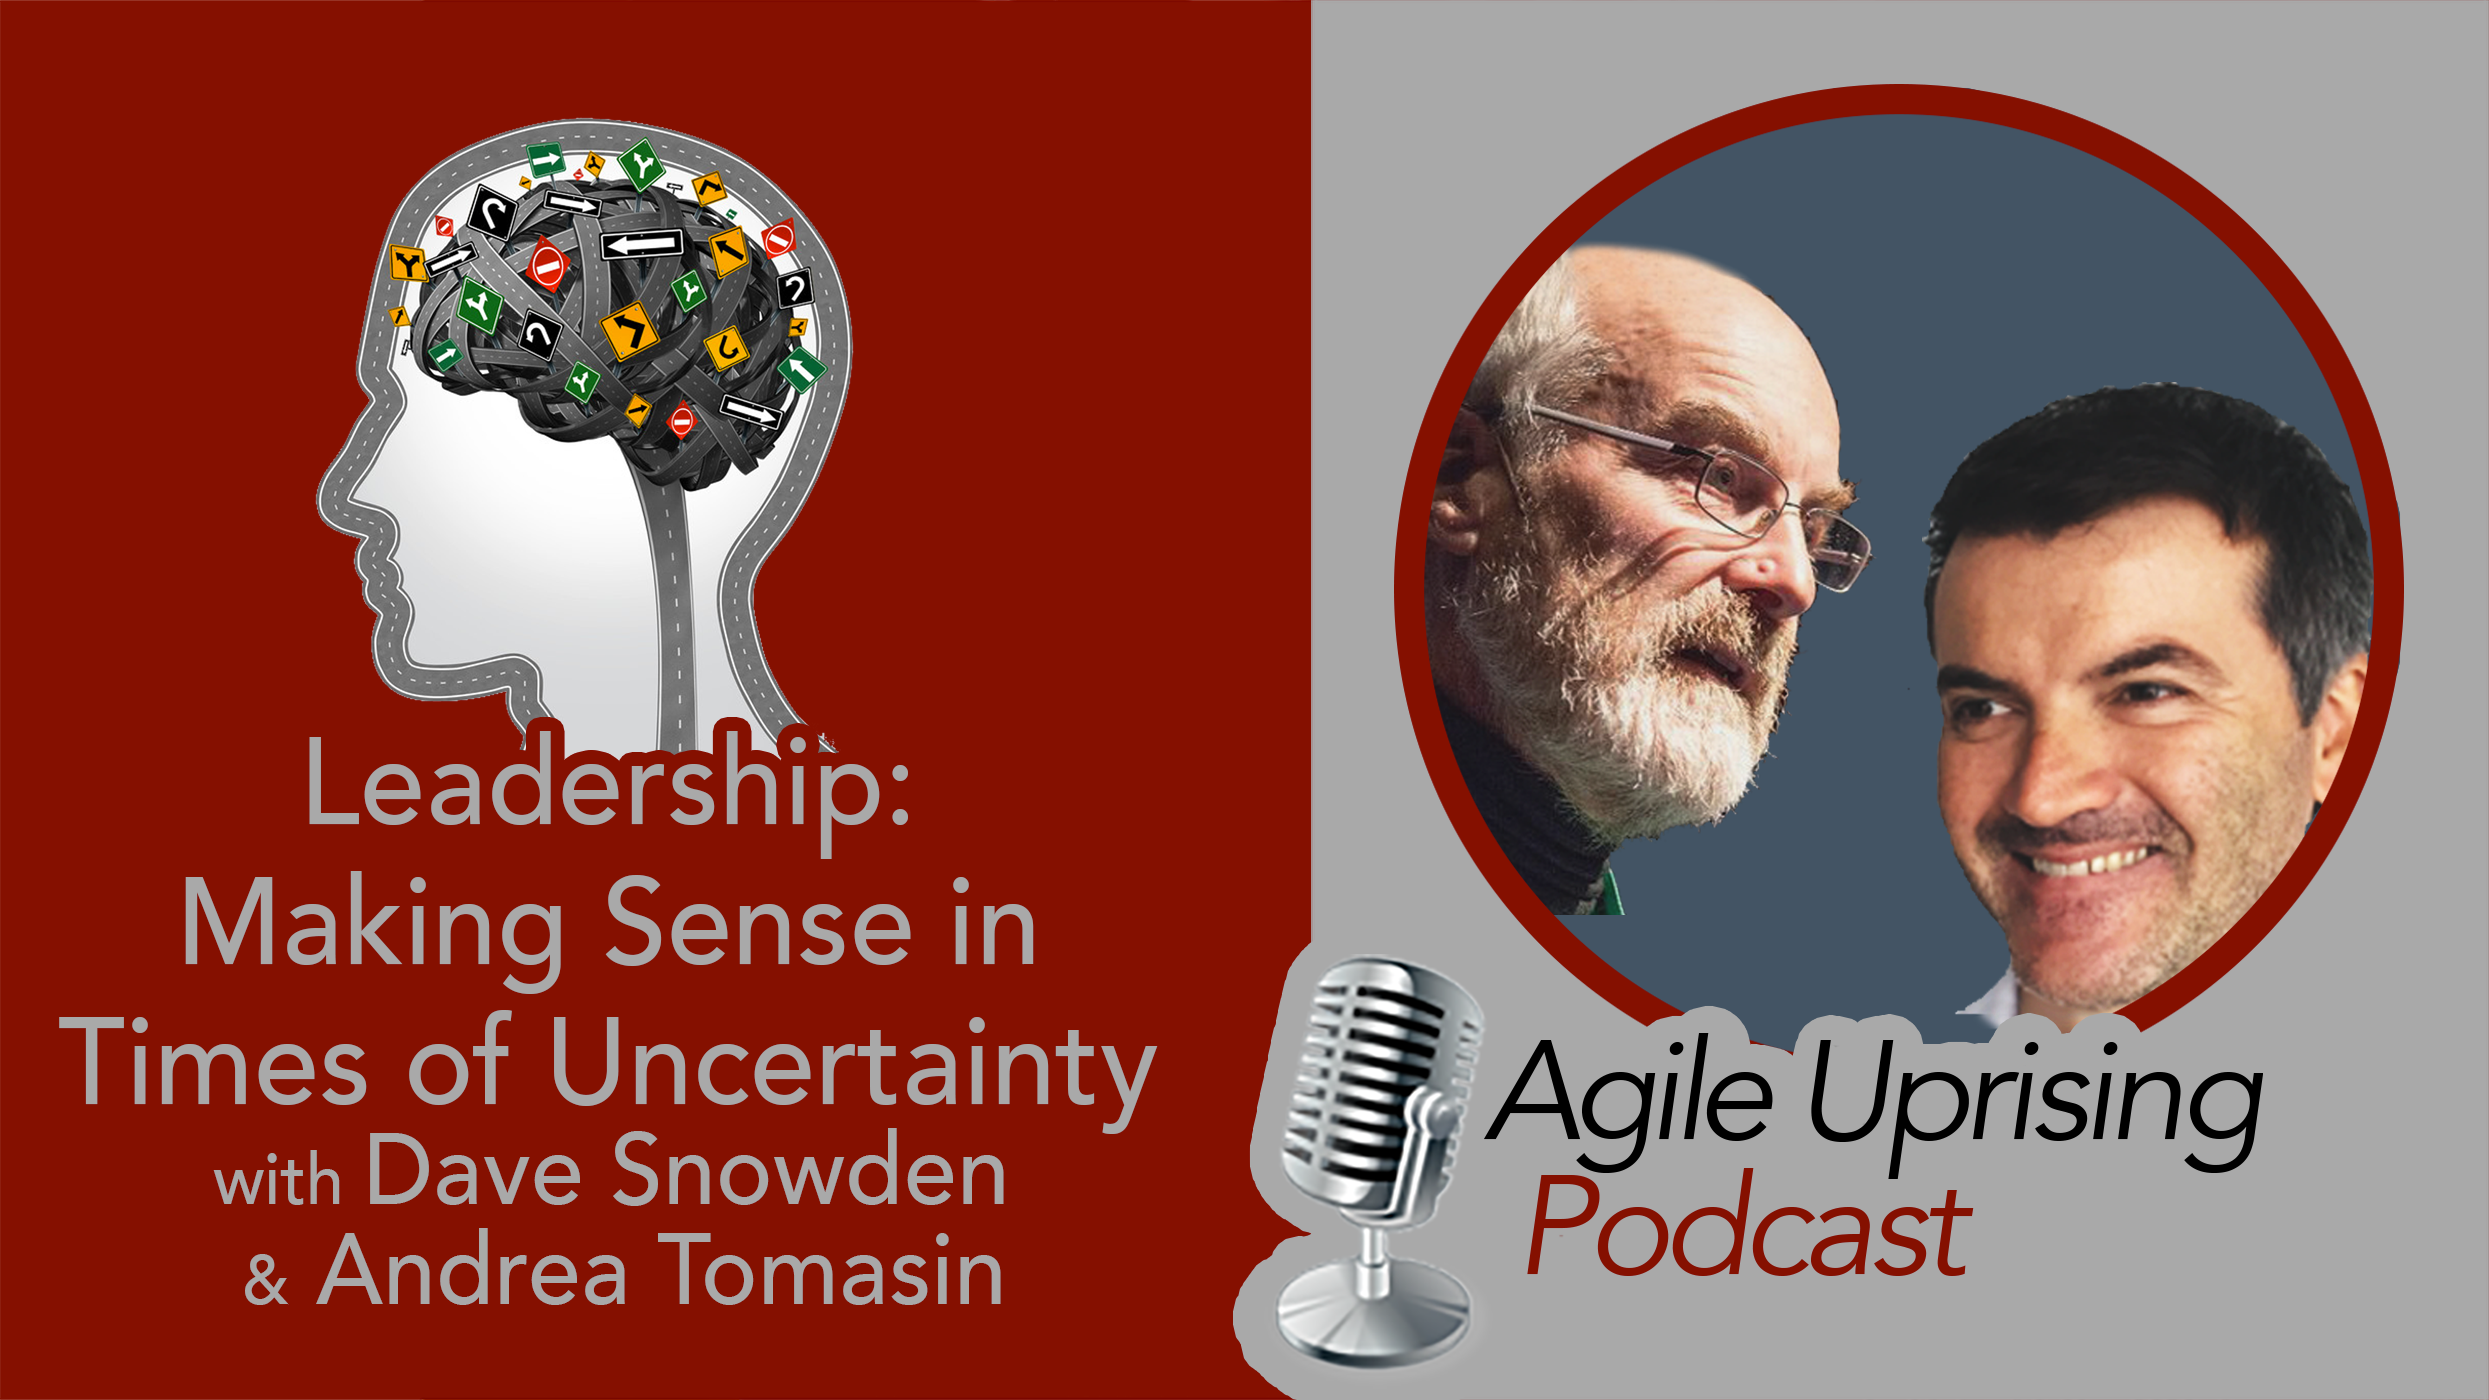 Making Sense in Times of Uncertainty with Dave Snowden & Andrea Tomasin